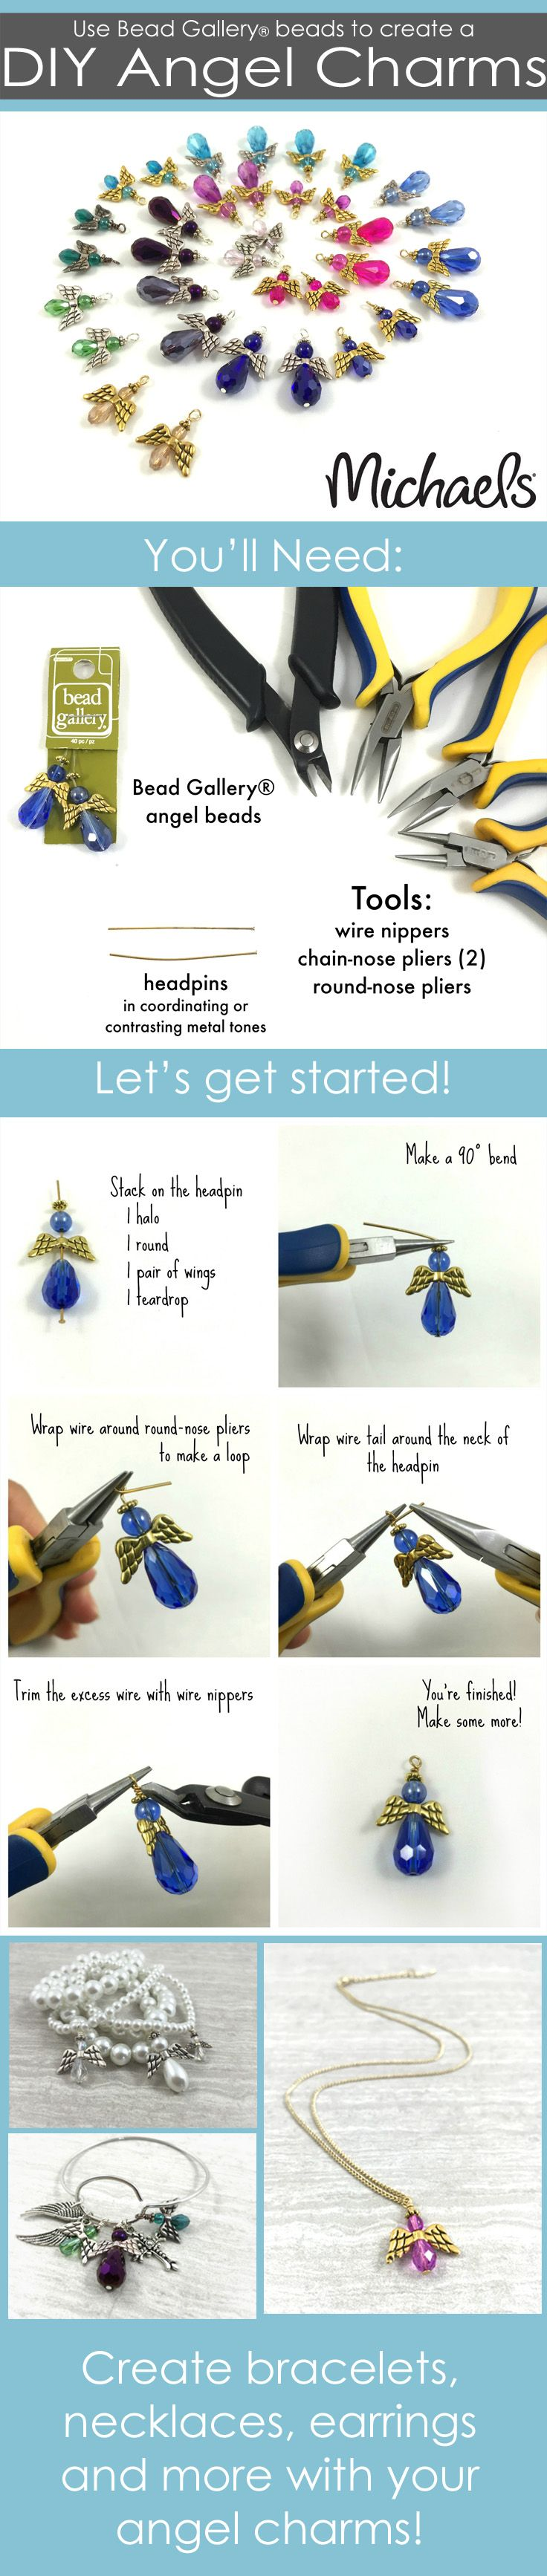 Create these easy DIY Angel Charms following the steps to make bracelets, earrings, necklaces and more.